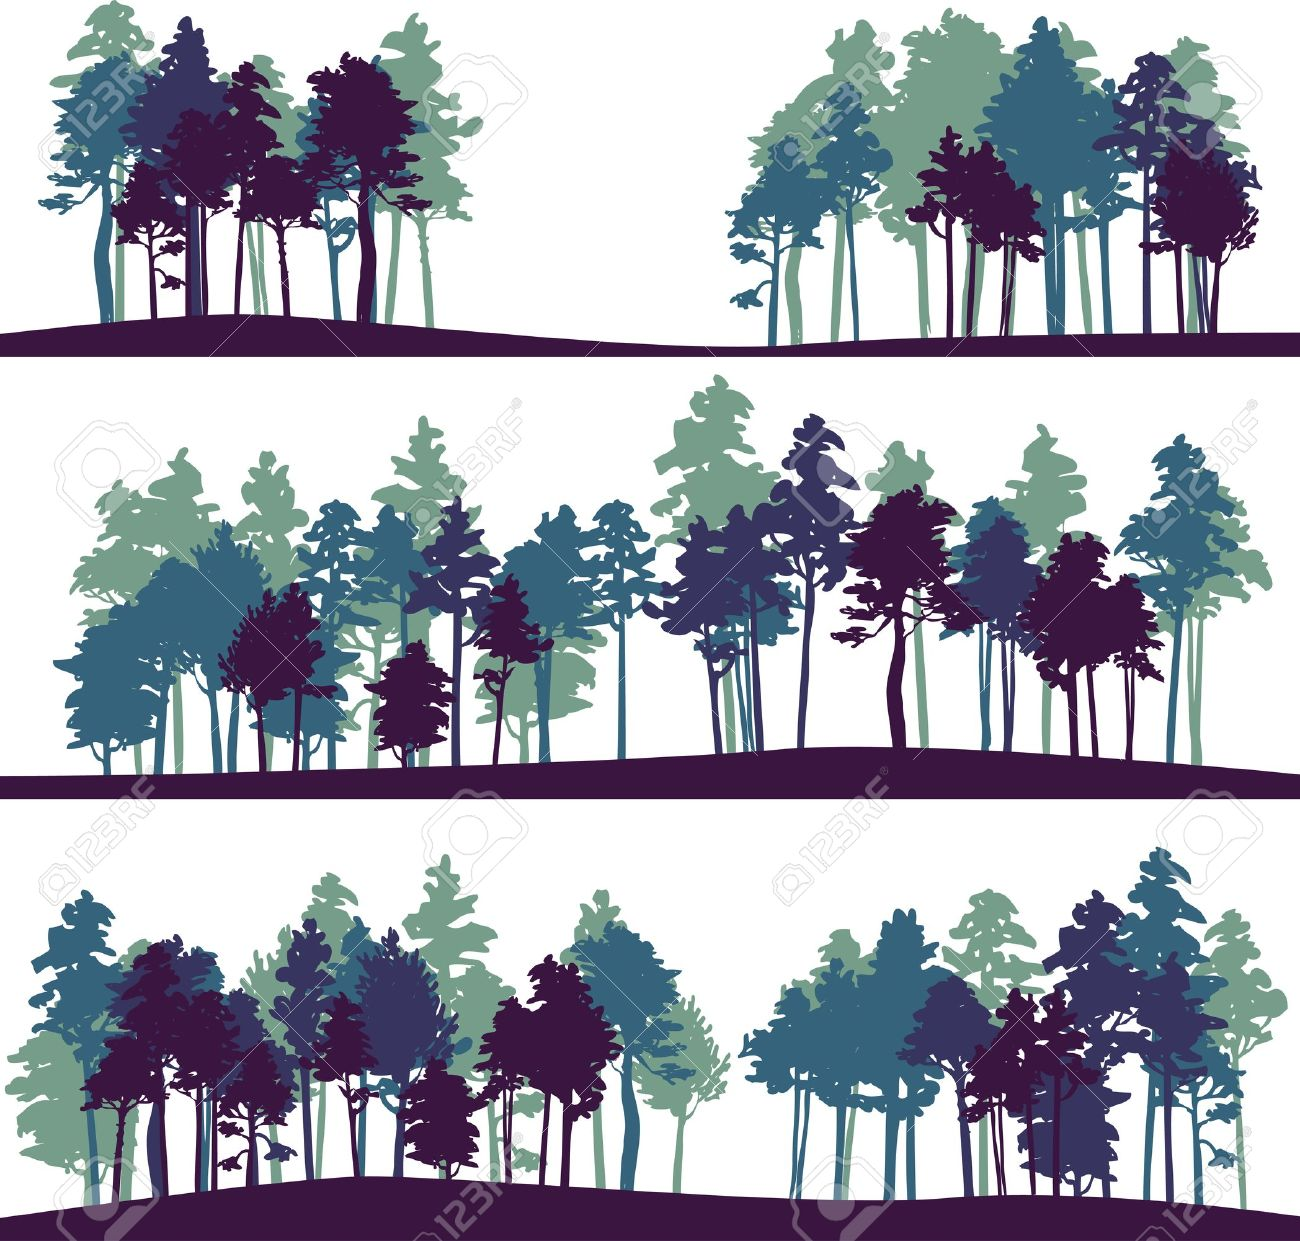 263 Redwood Tree Stock Illustrations, Cliparts And Royalty Free.